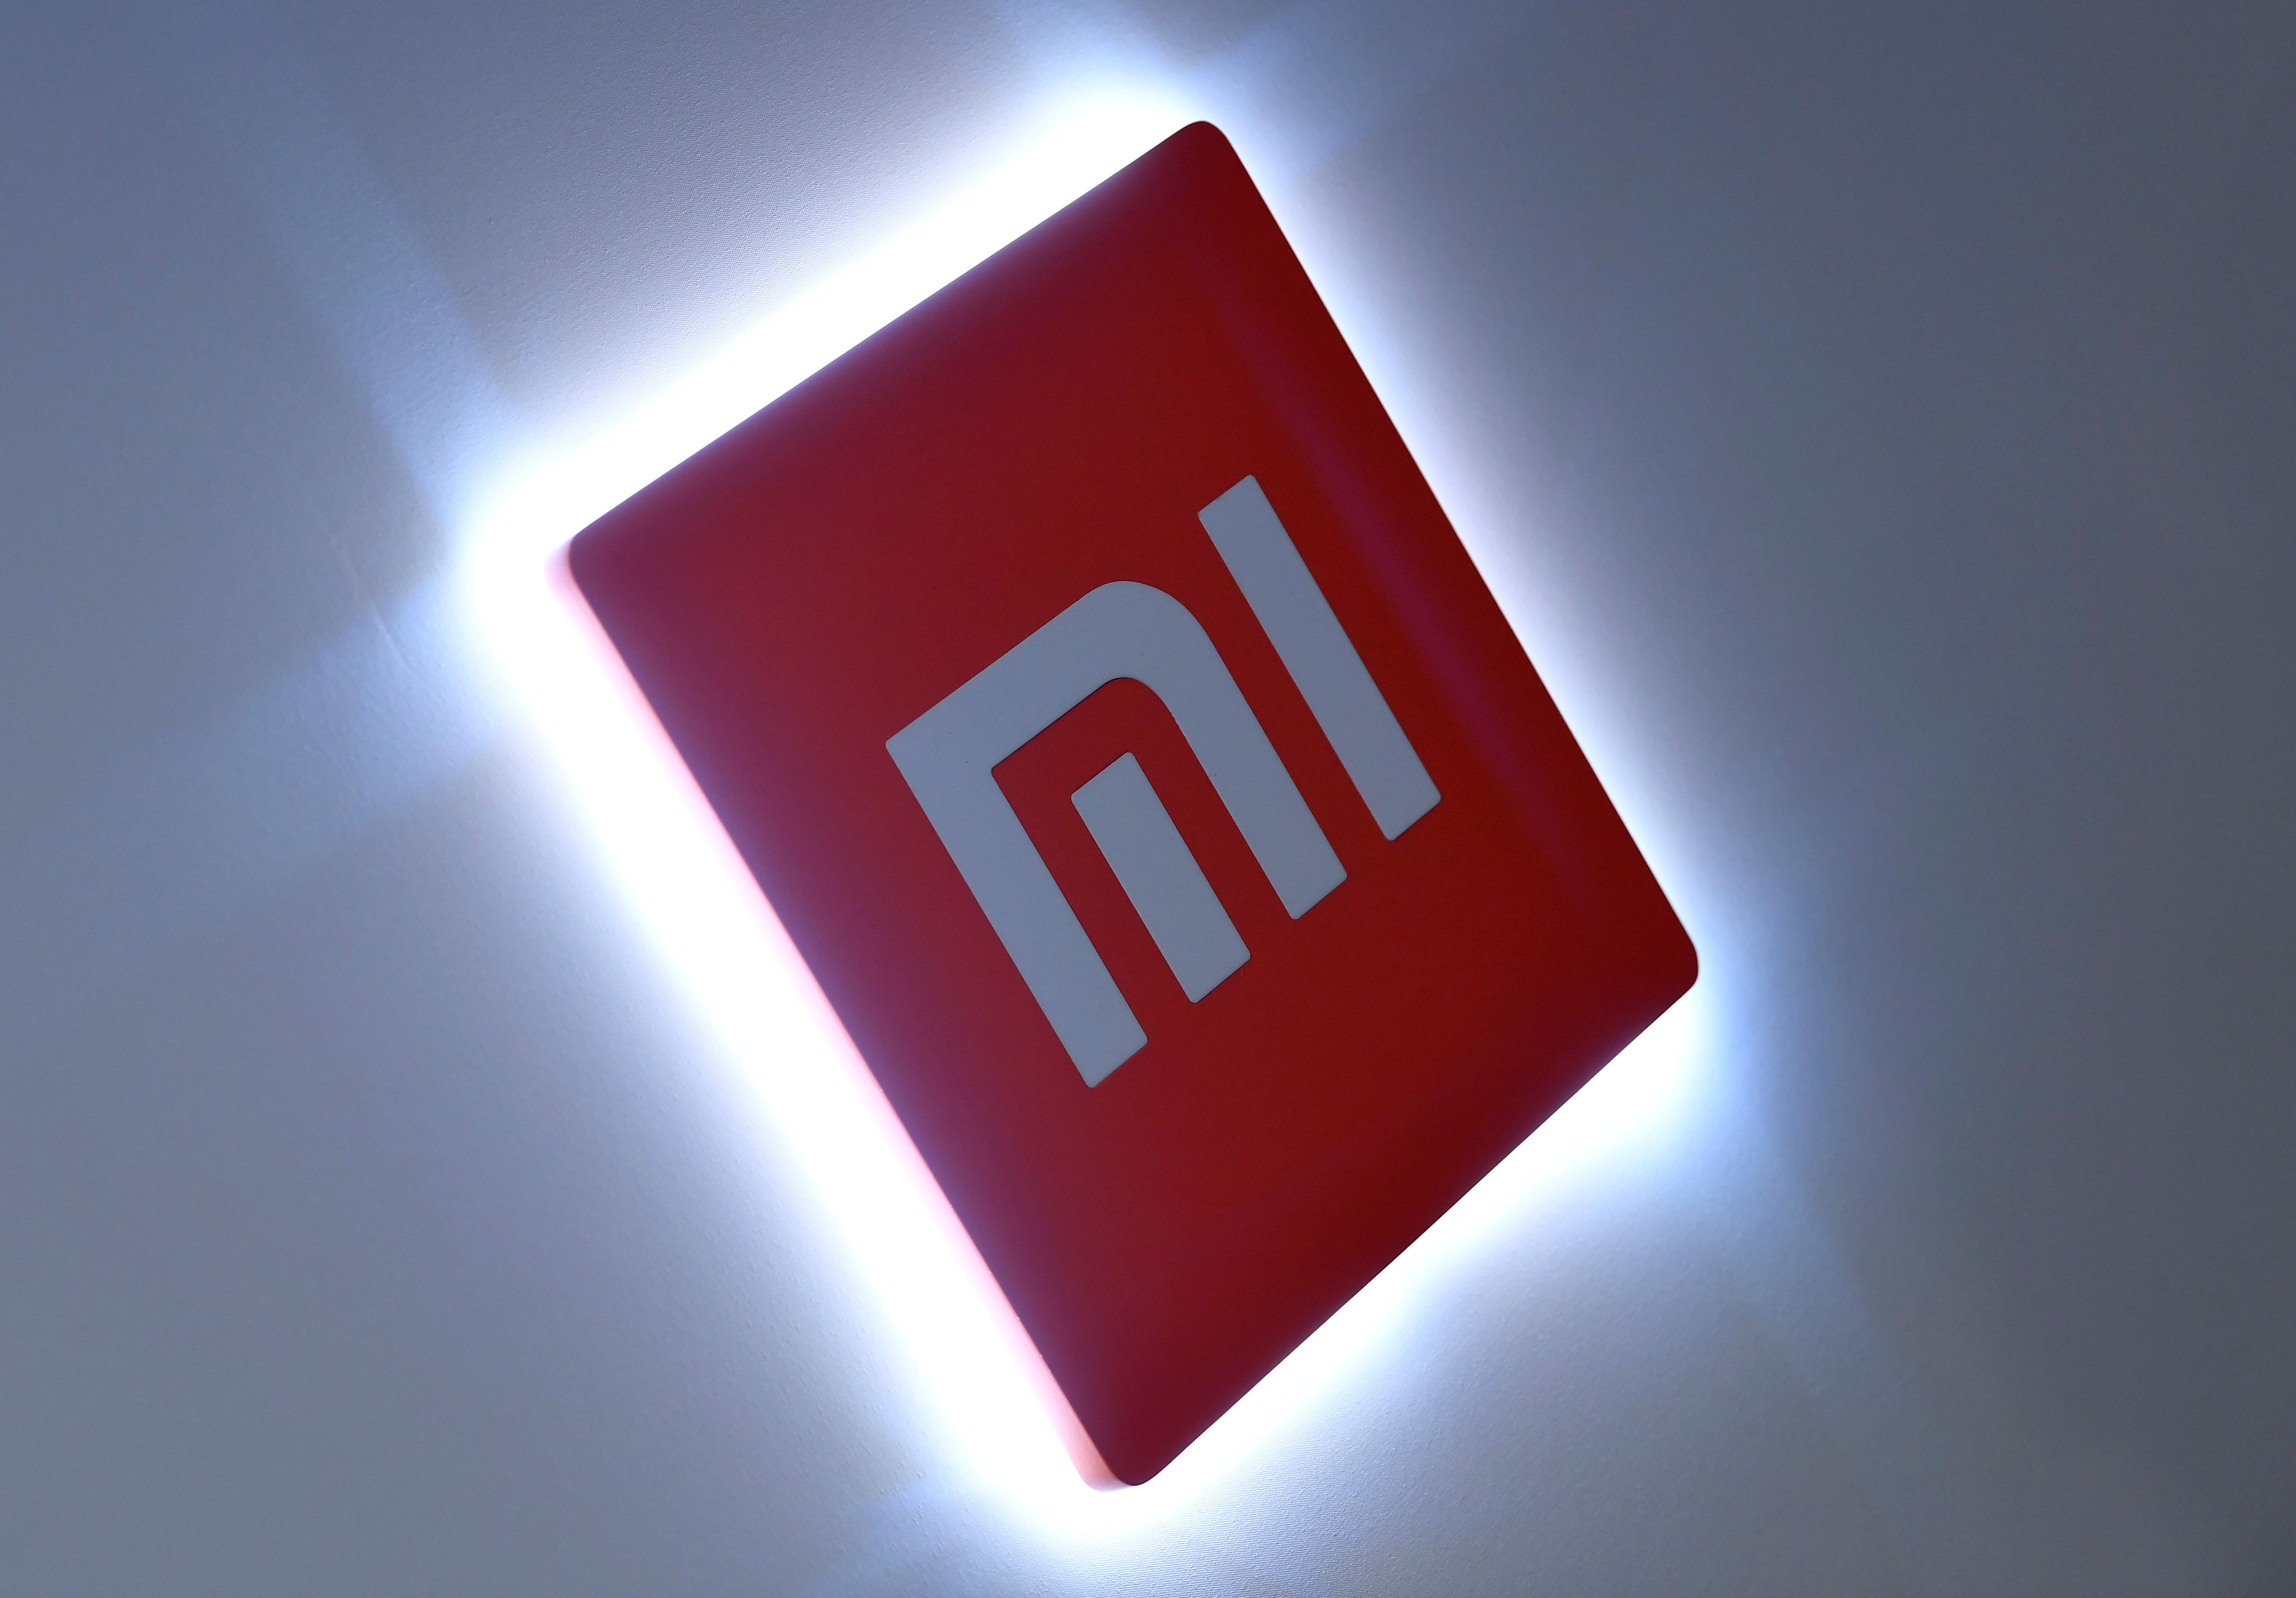 Chinese smartphone maker Xiaomi posts 15% rise in sales, misses estimates